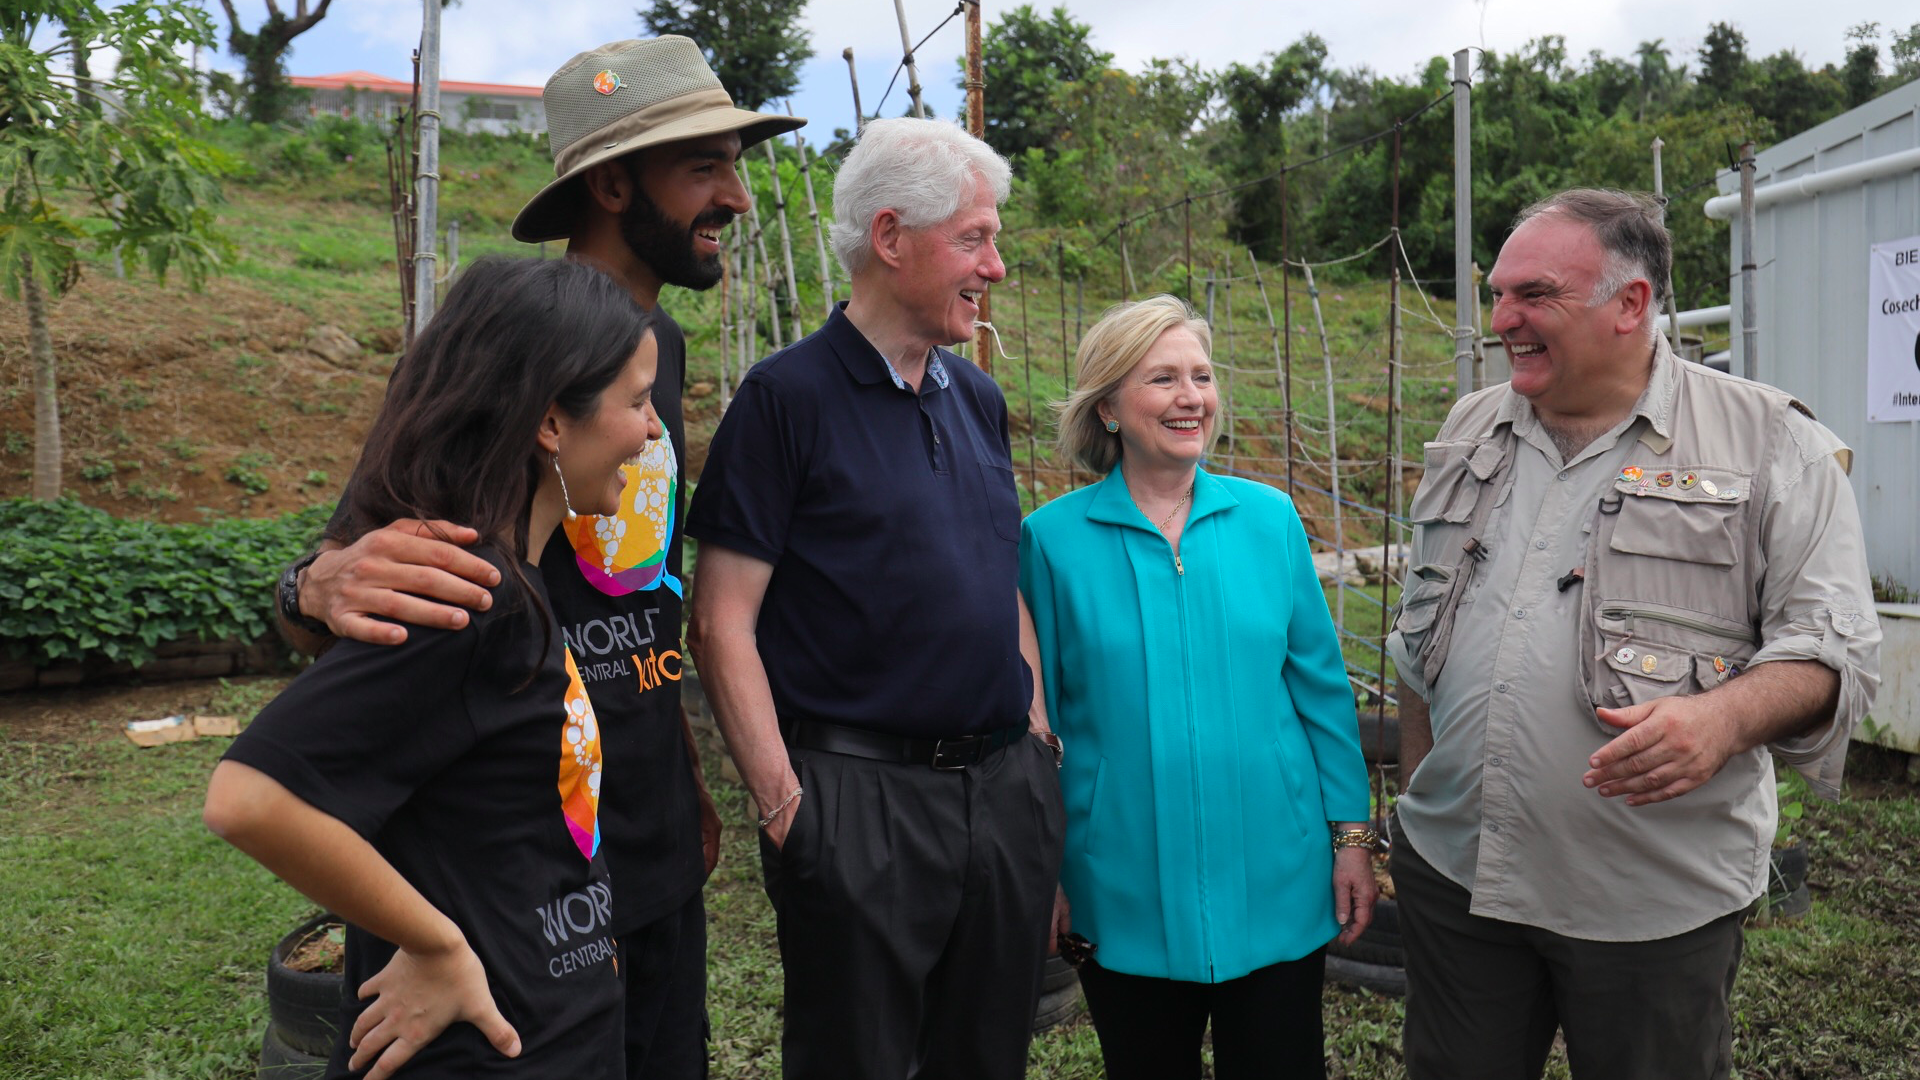 The Clintons with Jose Andres